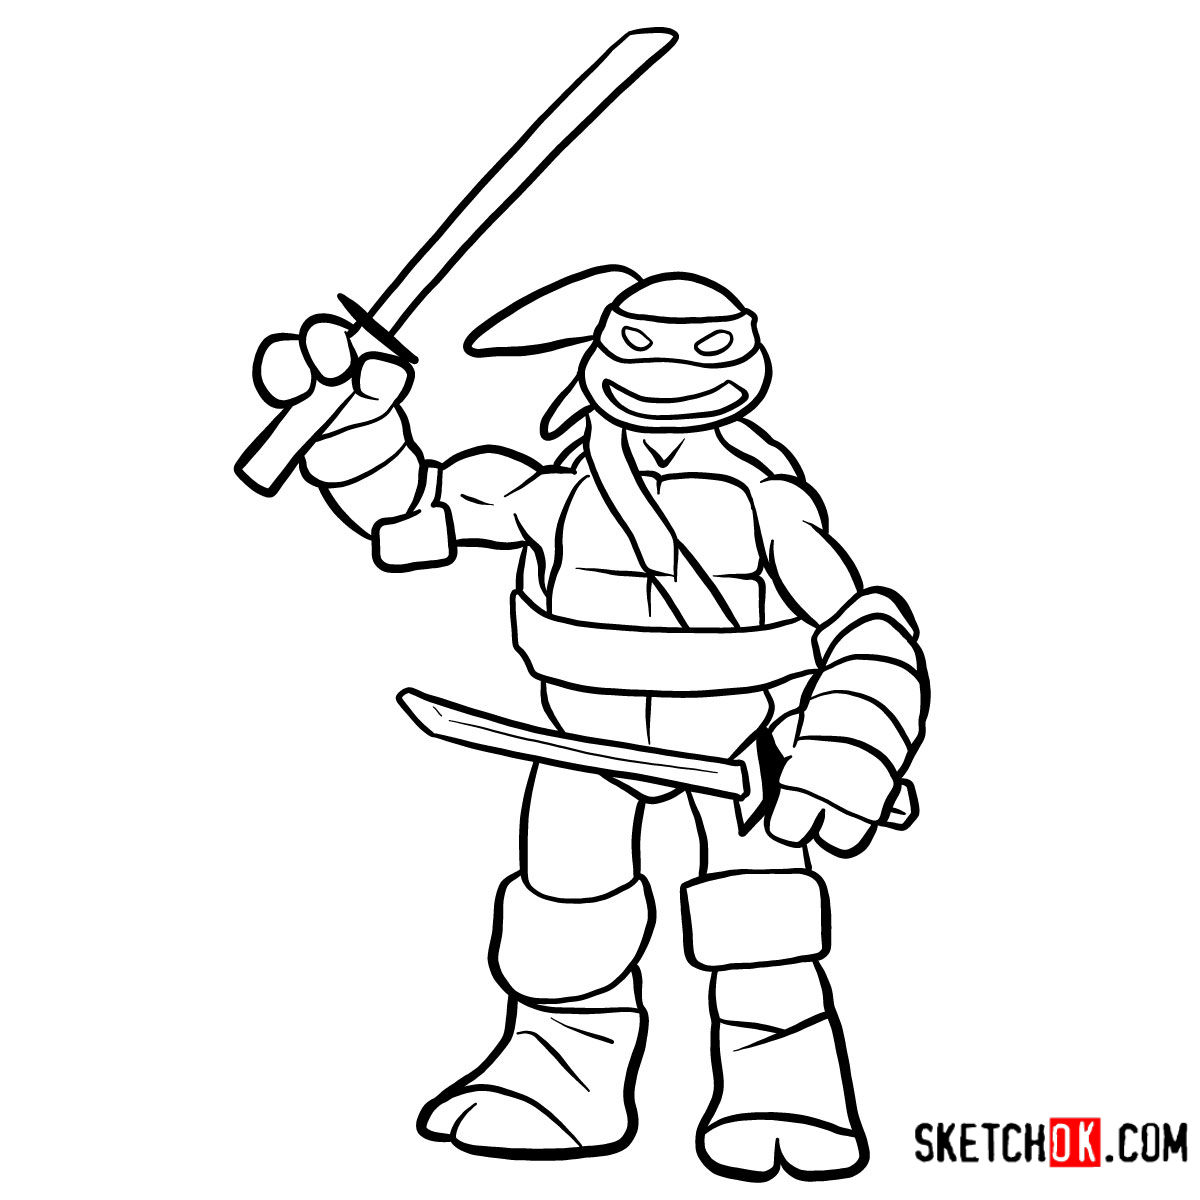 How to draw Leonardo | TMNT